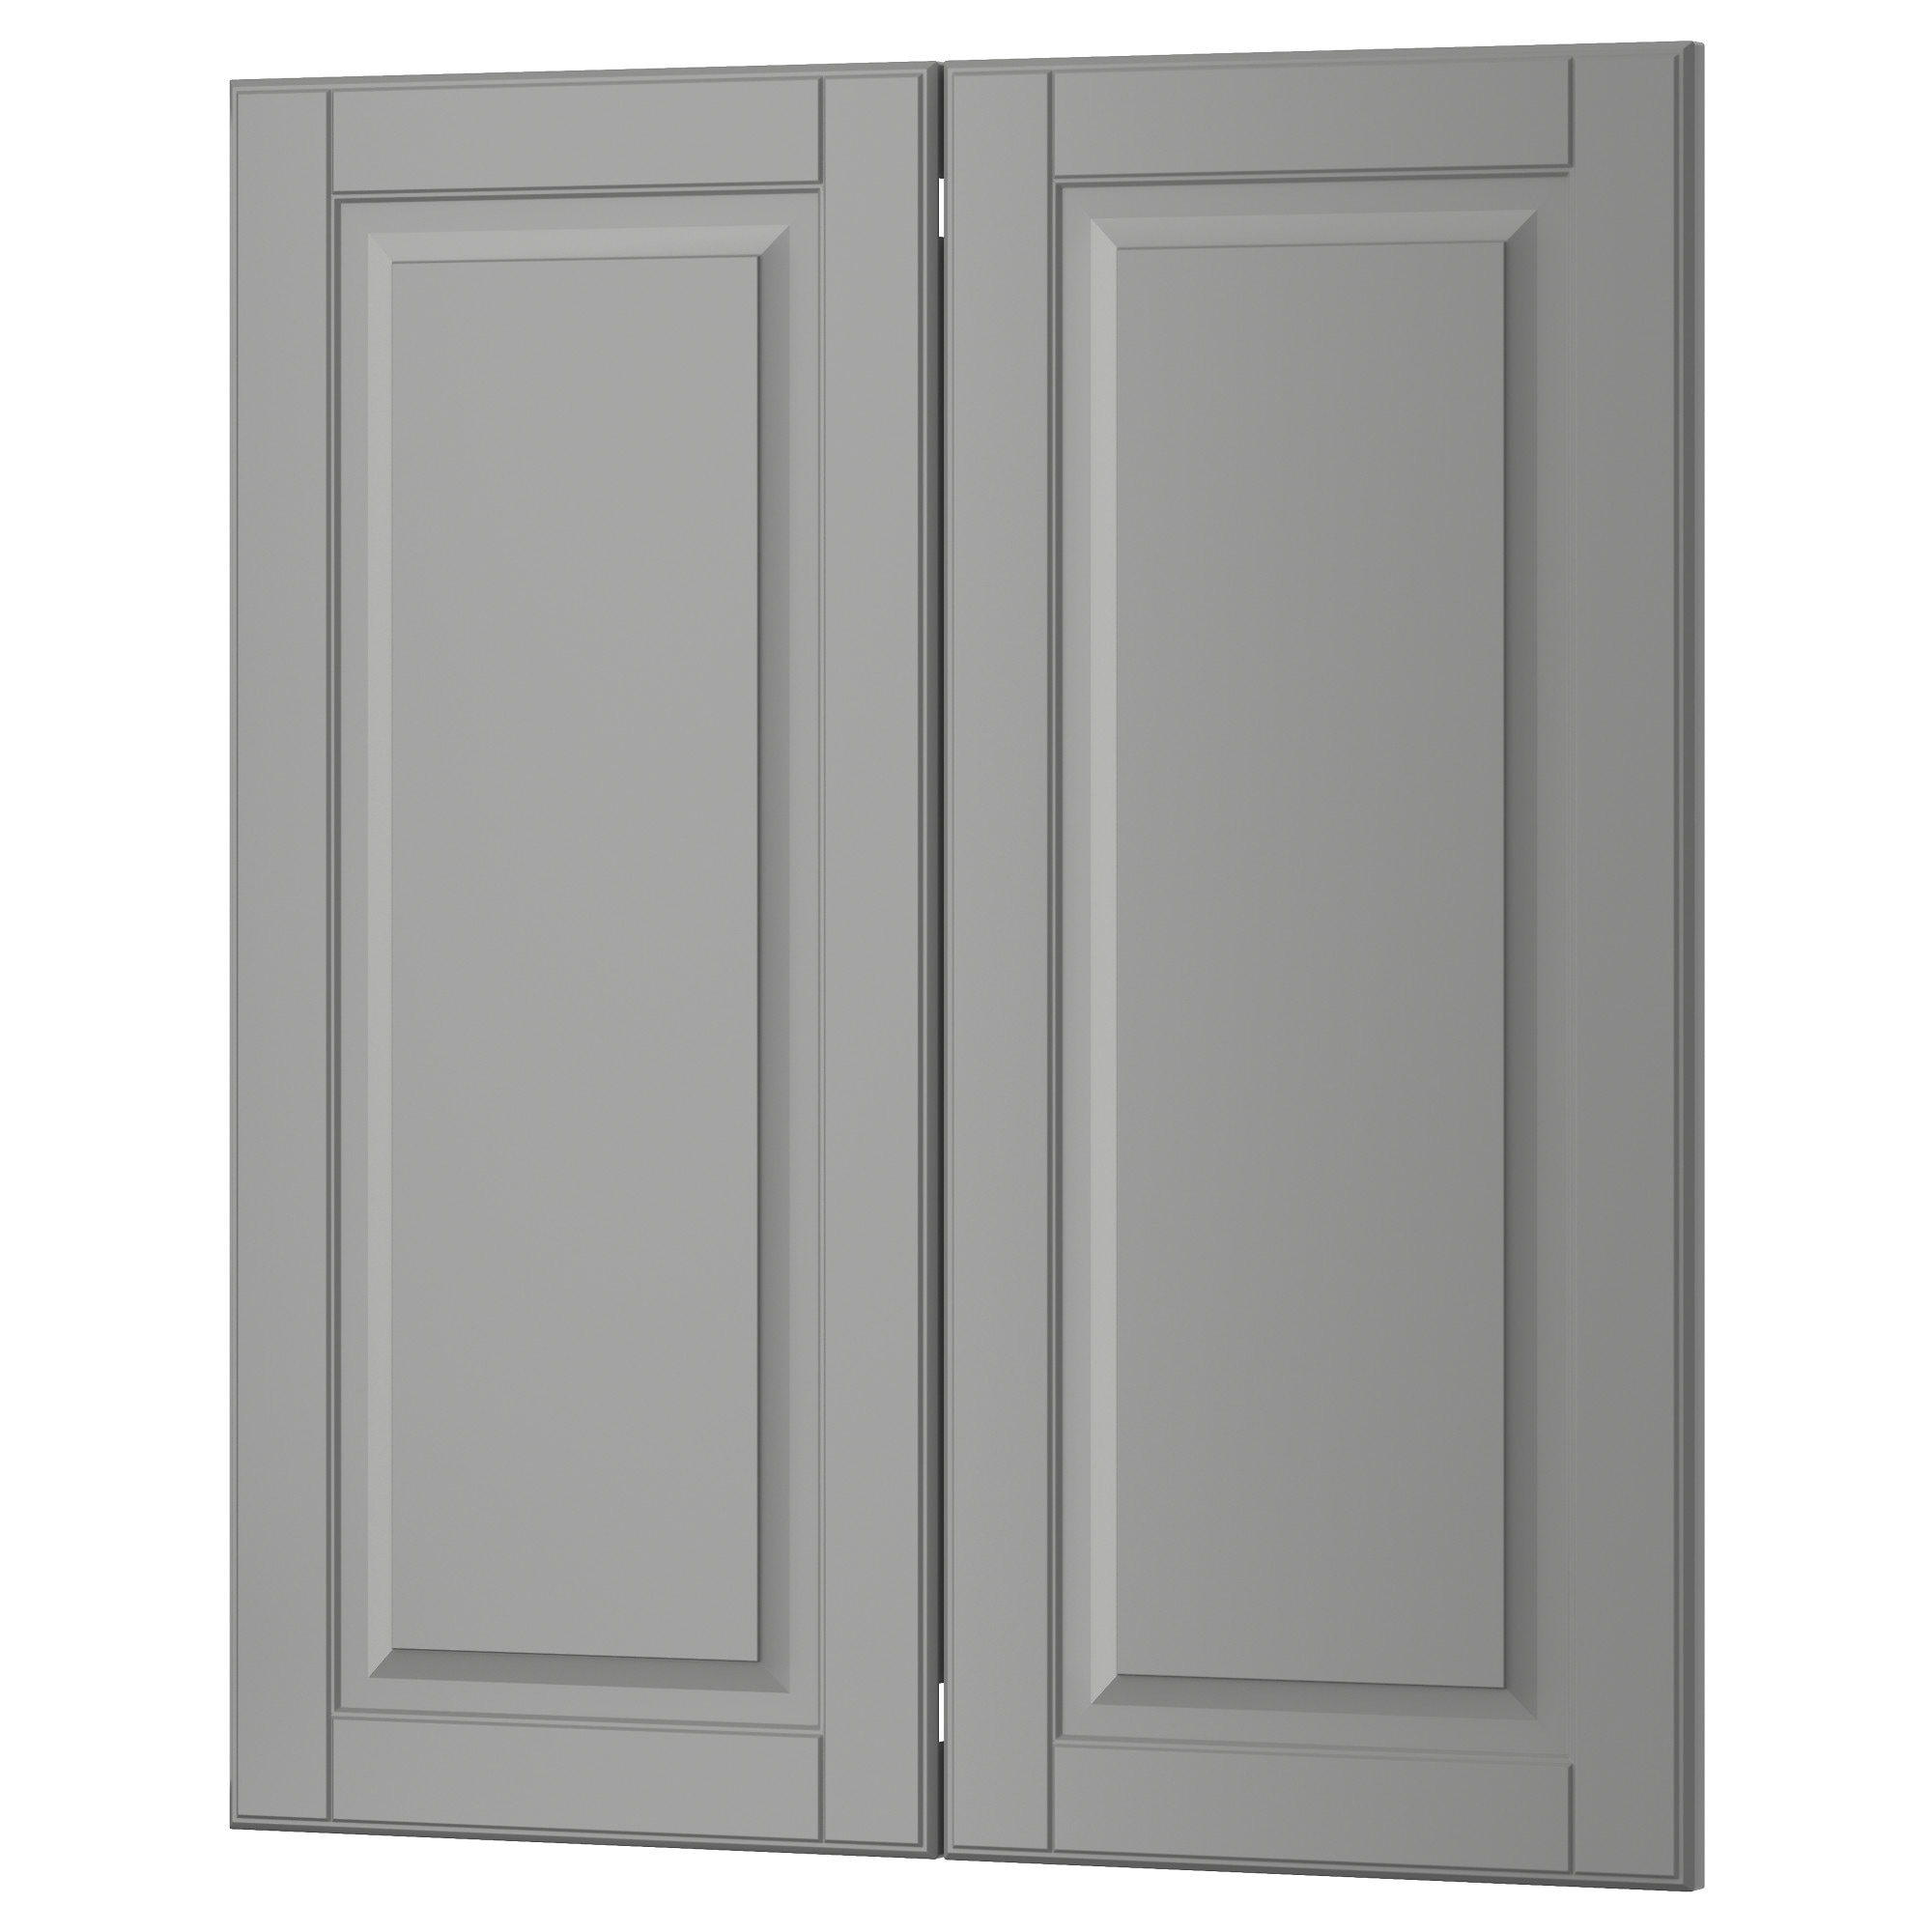 BODBYN 2-p door/corner base cabinet set - IKEA